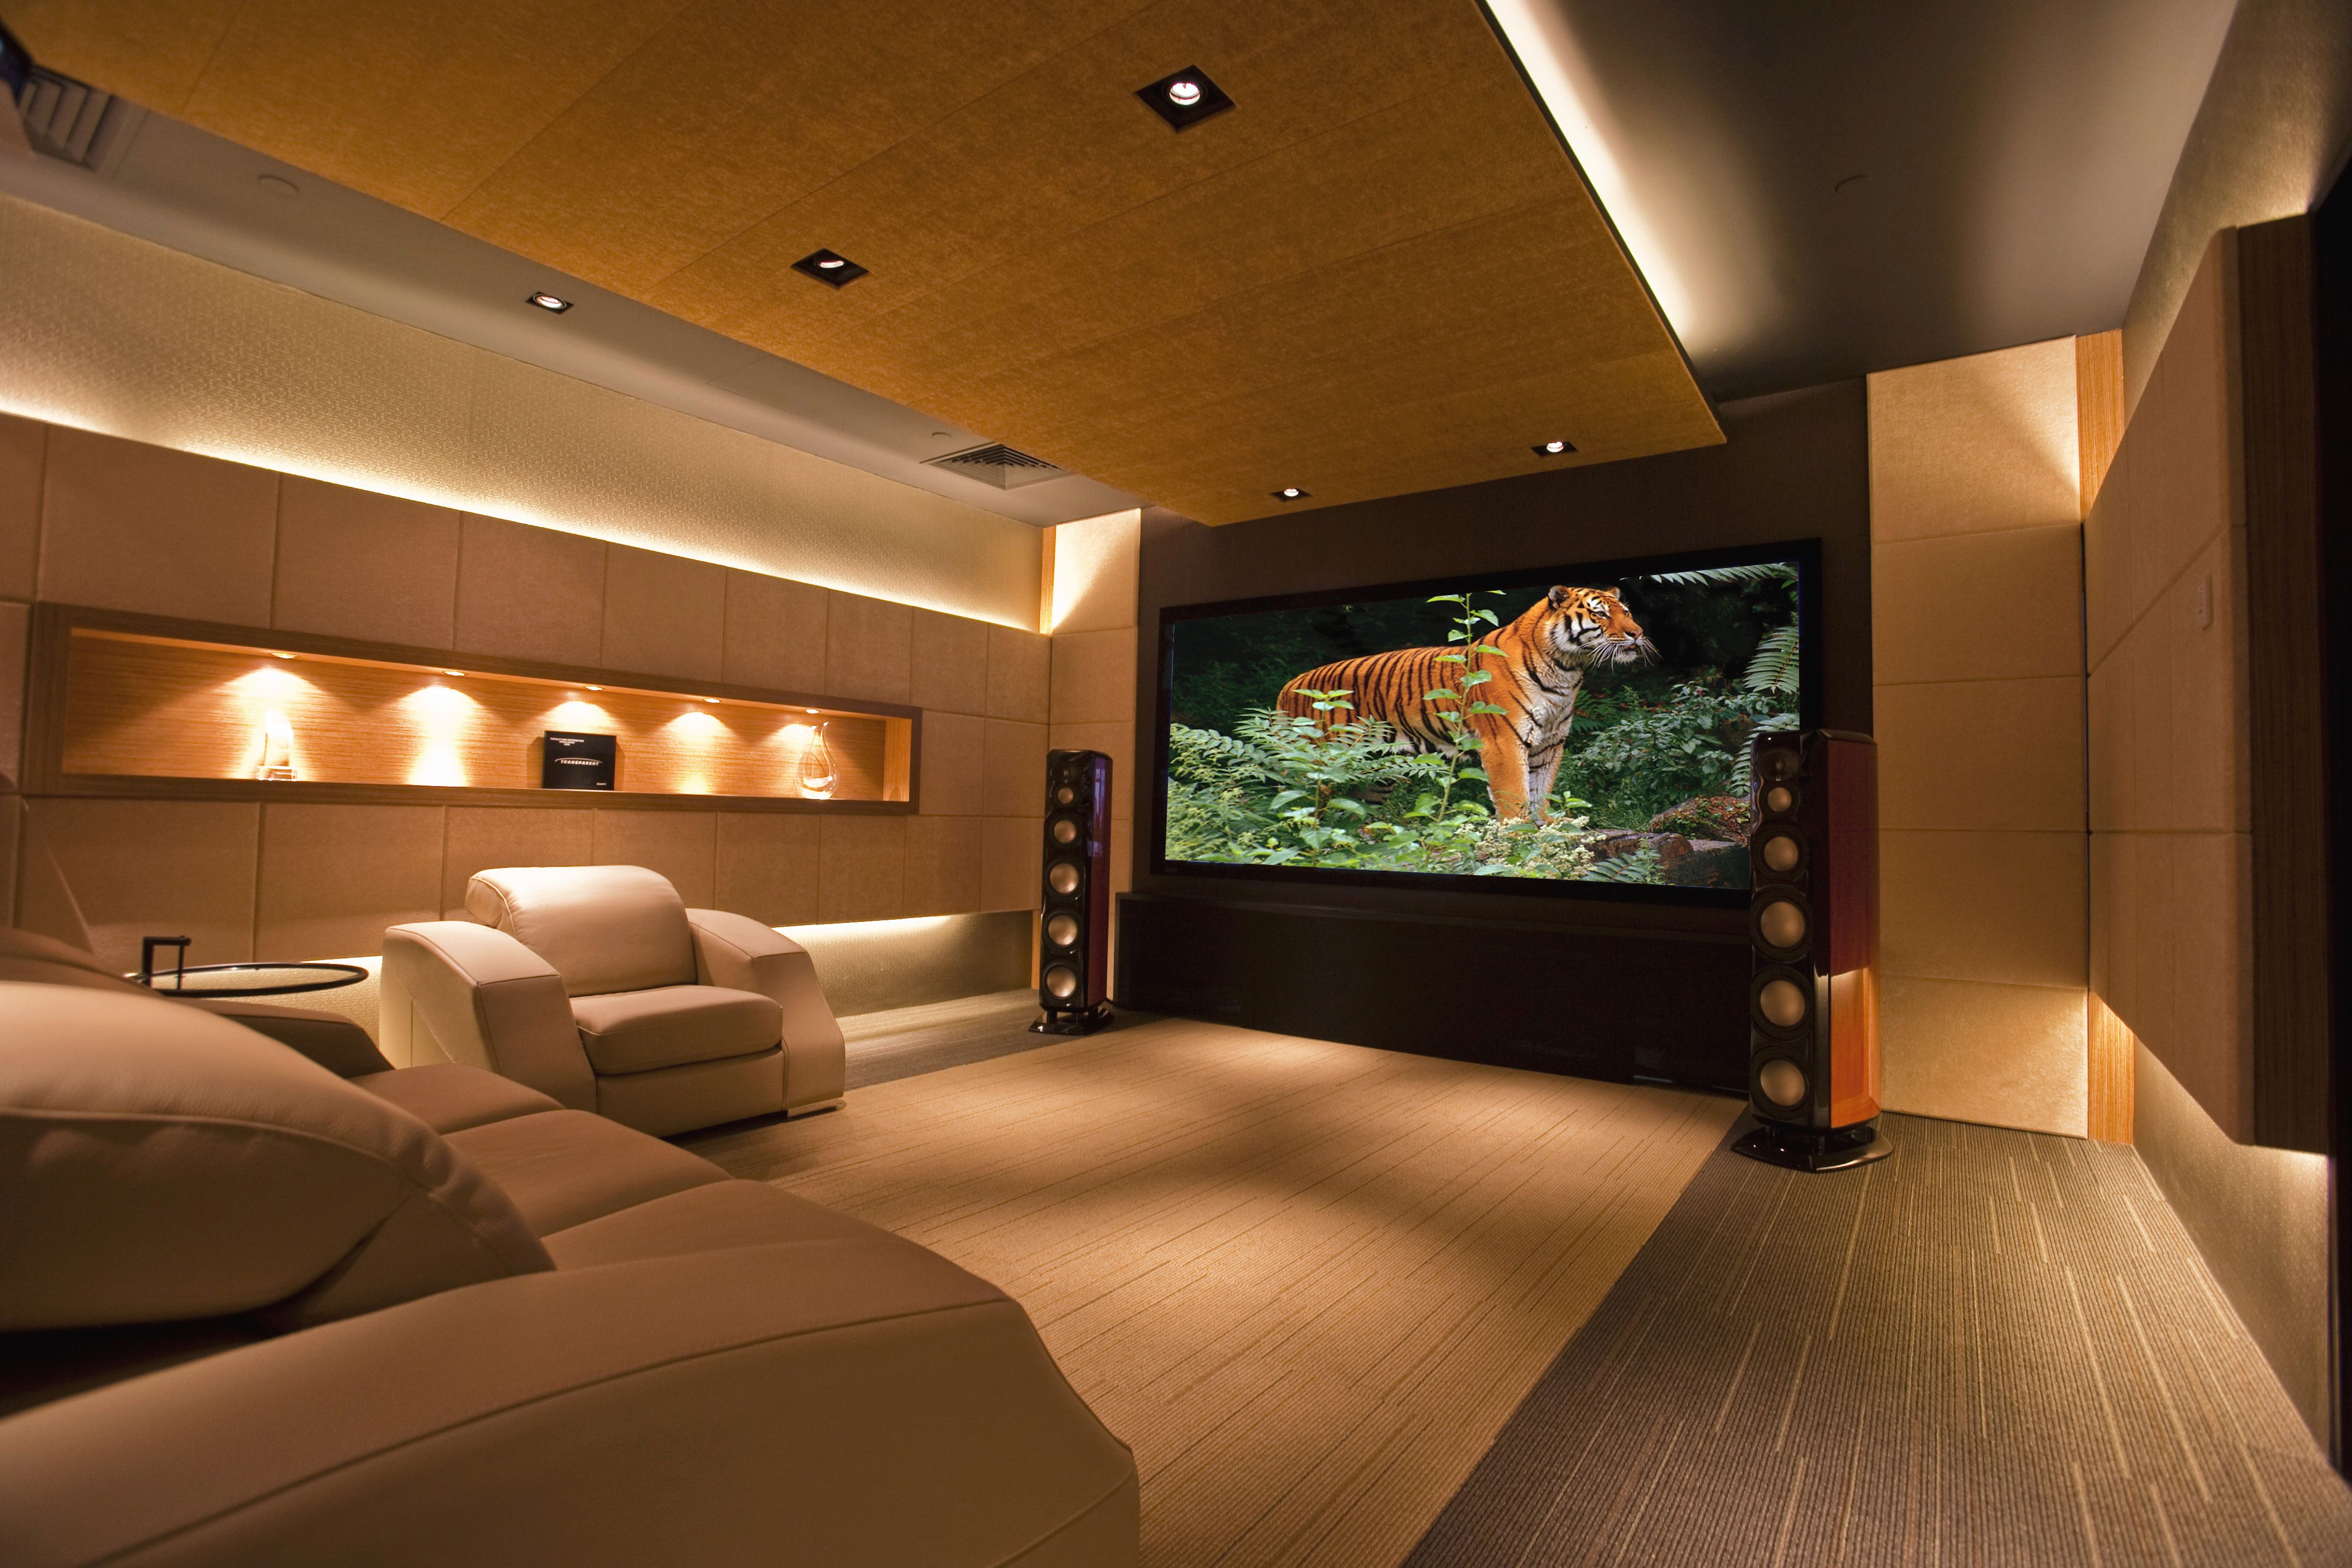 finished attic decorating ideas - About DreamVision – DreamVision